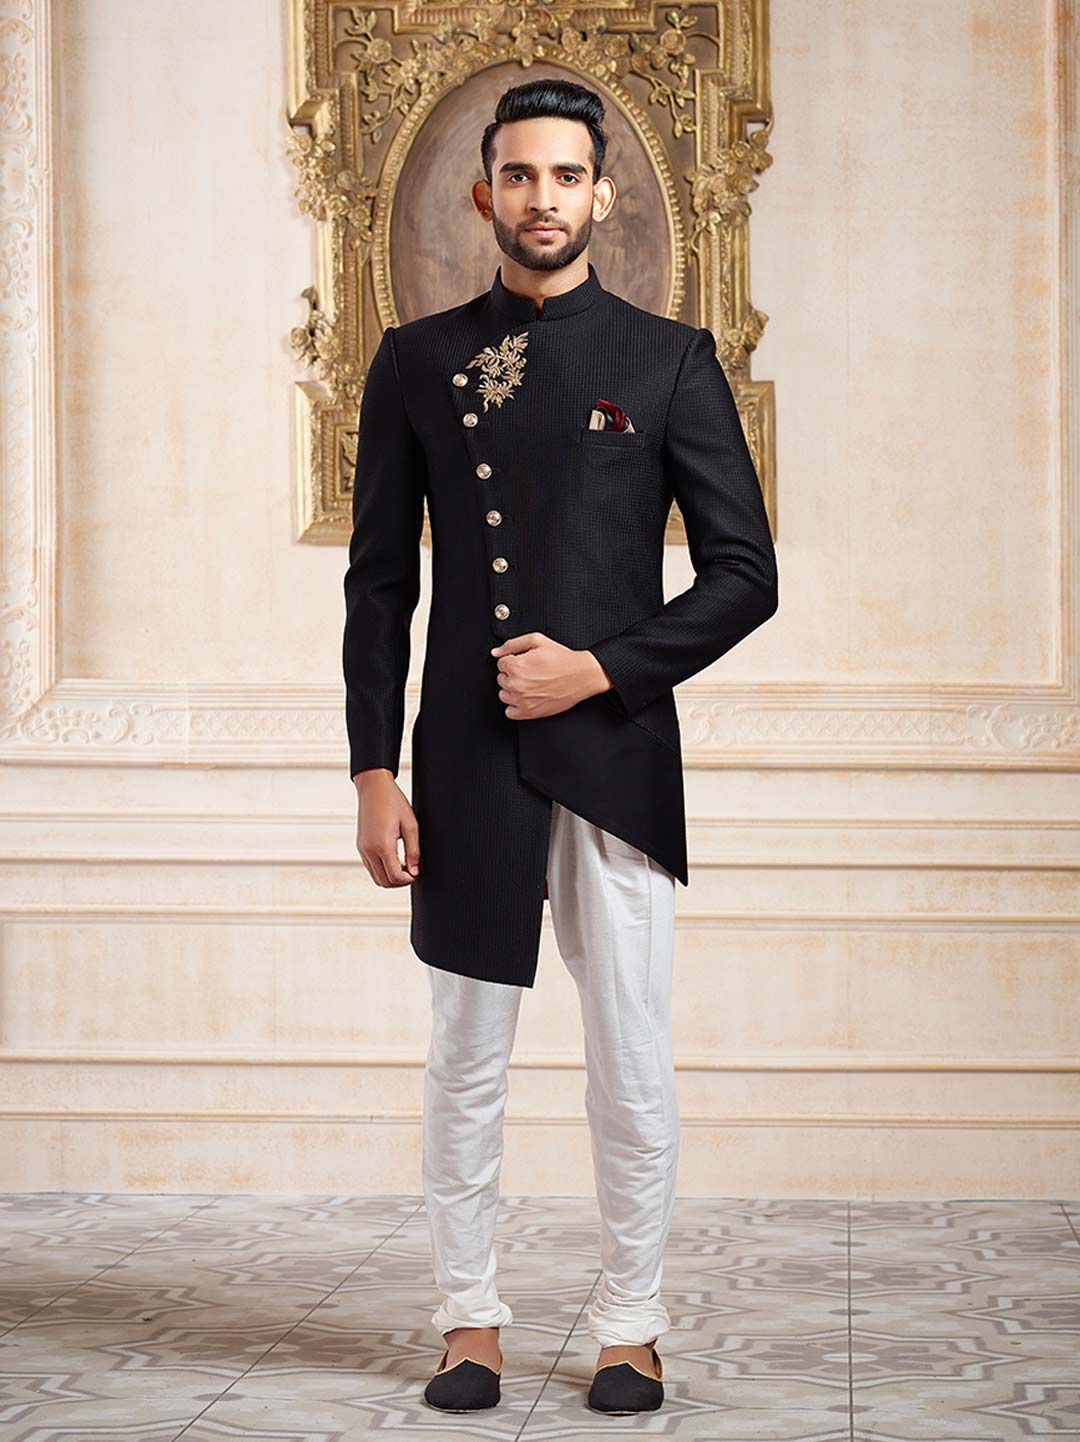 b6b12b2e6b Shop Black terry rayon party wear indo western online from G3fashion India.  Brand - G3, Product code - G3-MIW5754, Price - 11899, Color - Black, ...